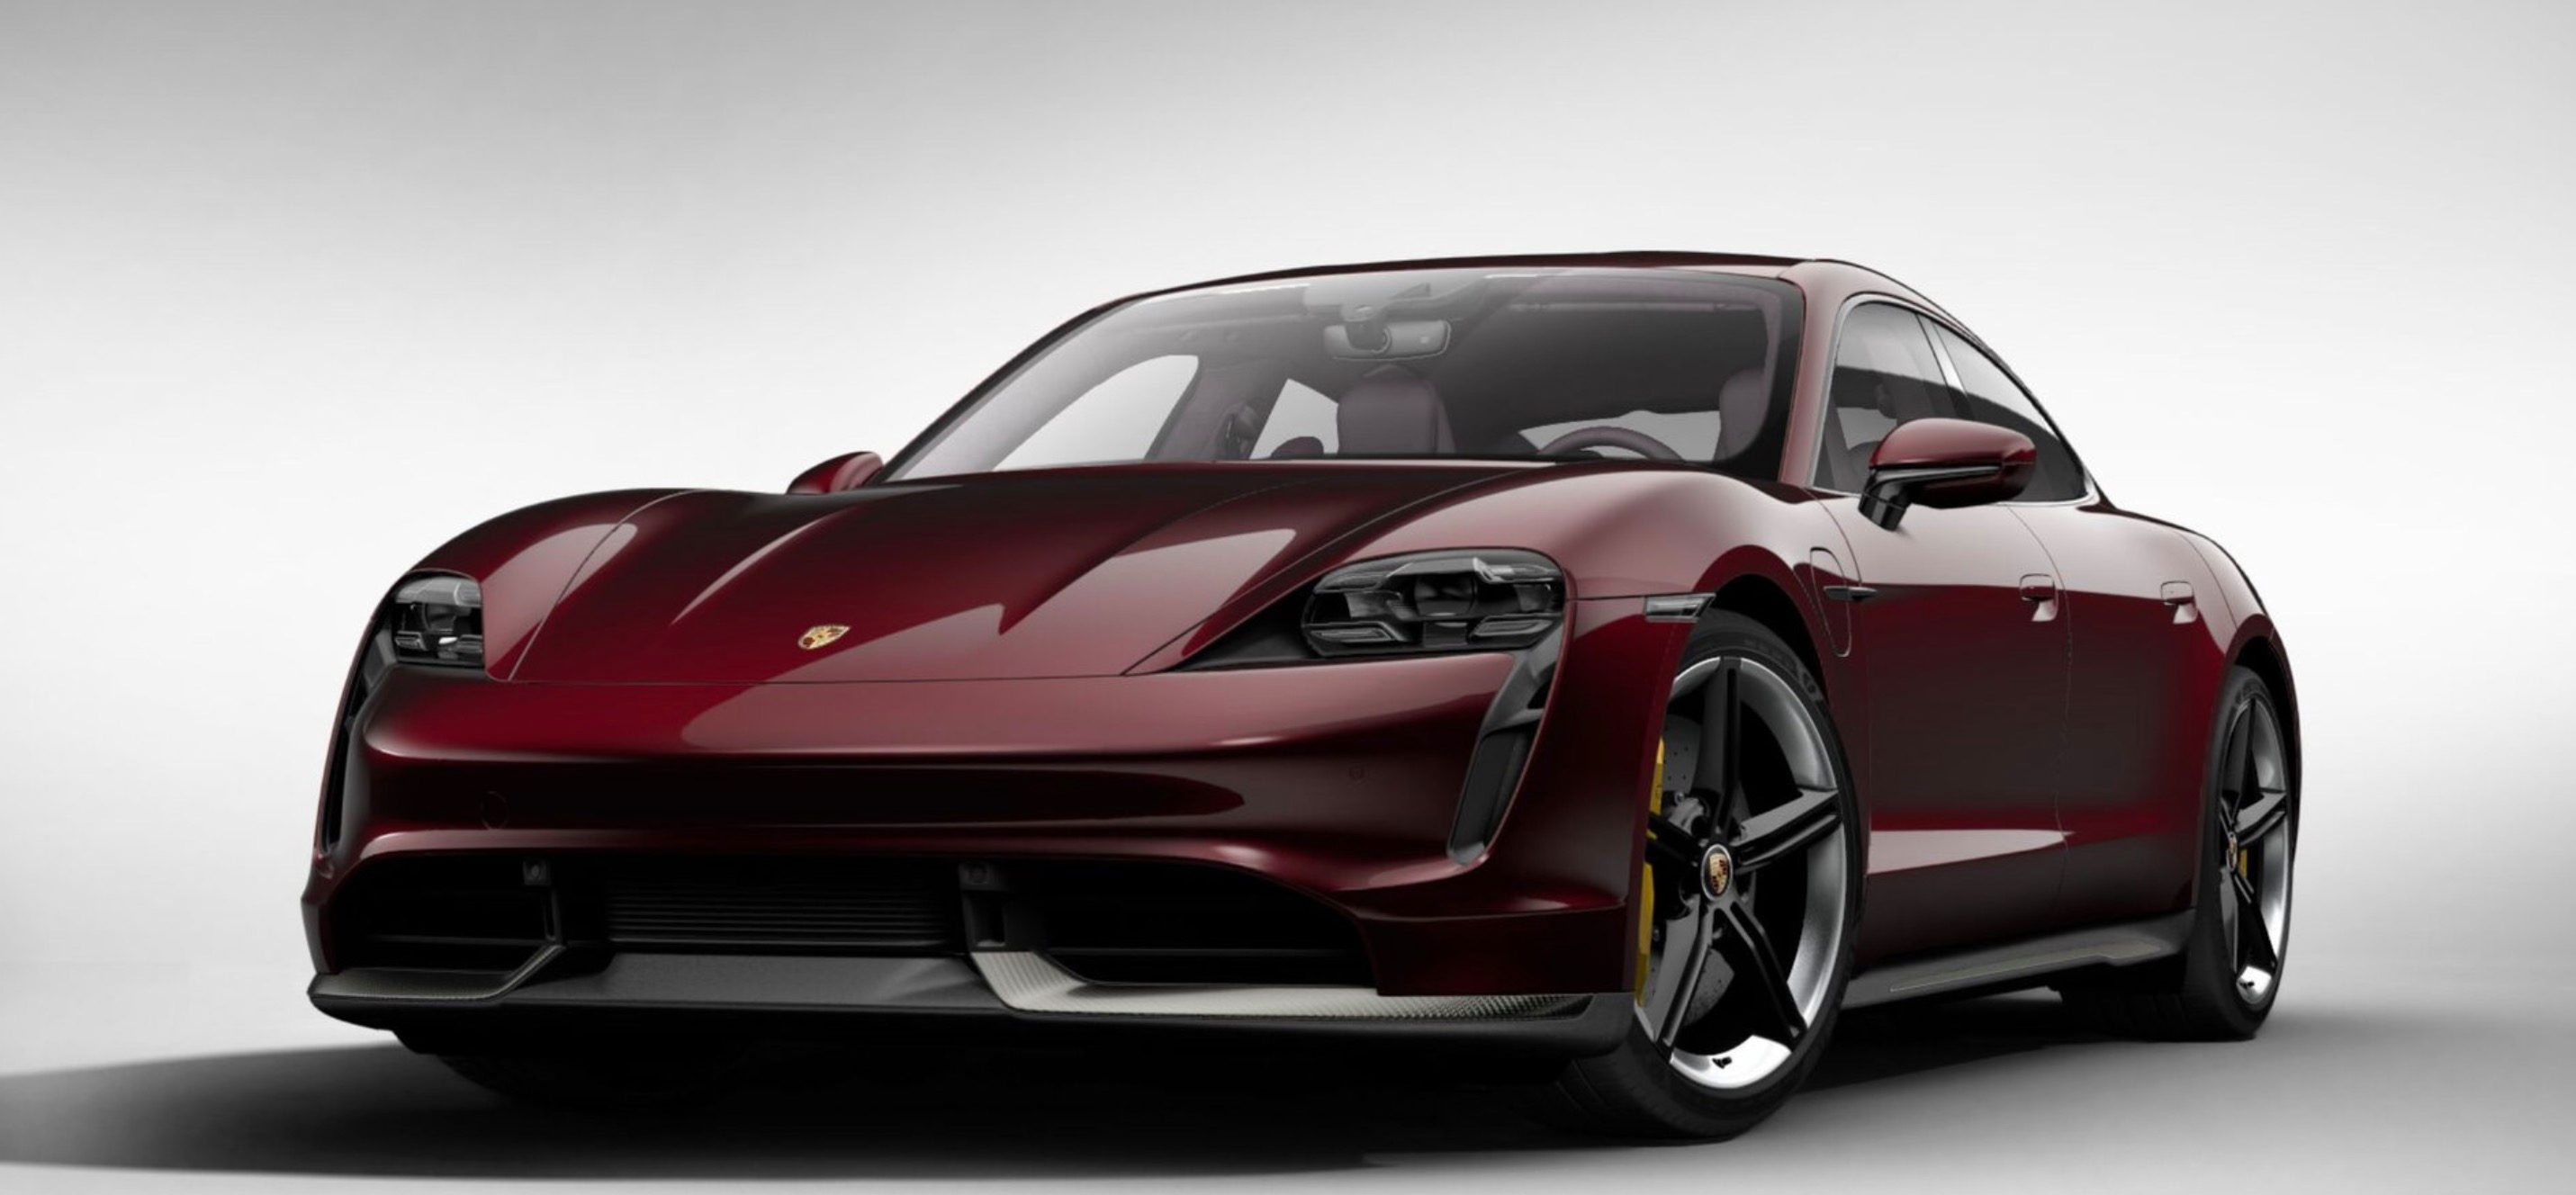 Porsche delivered 4,480 Taycan electric cars in first half of 2020